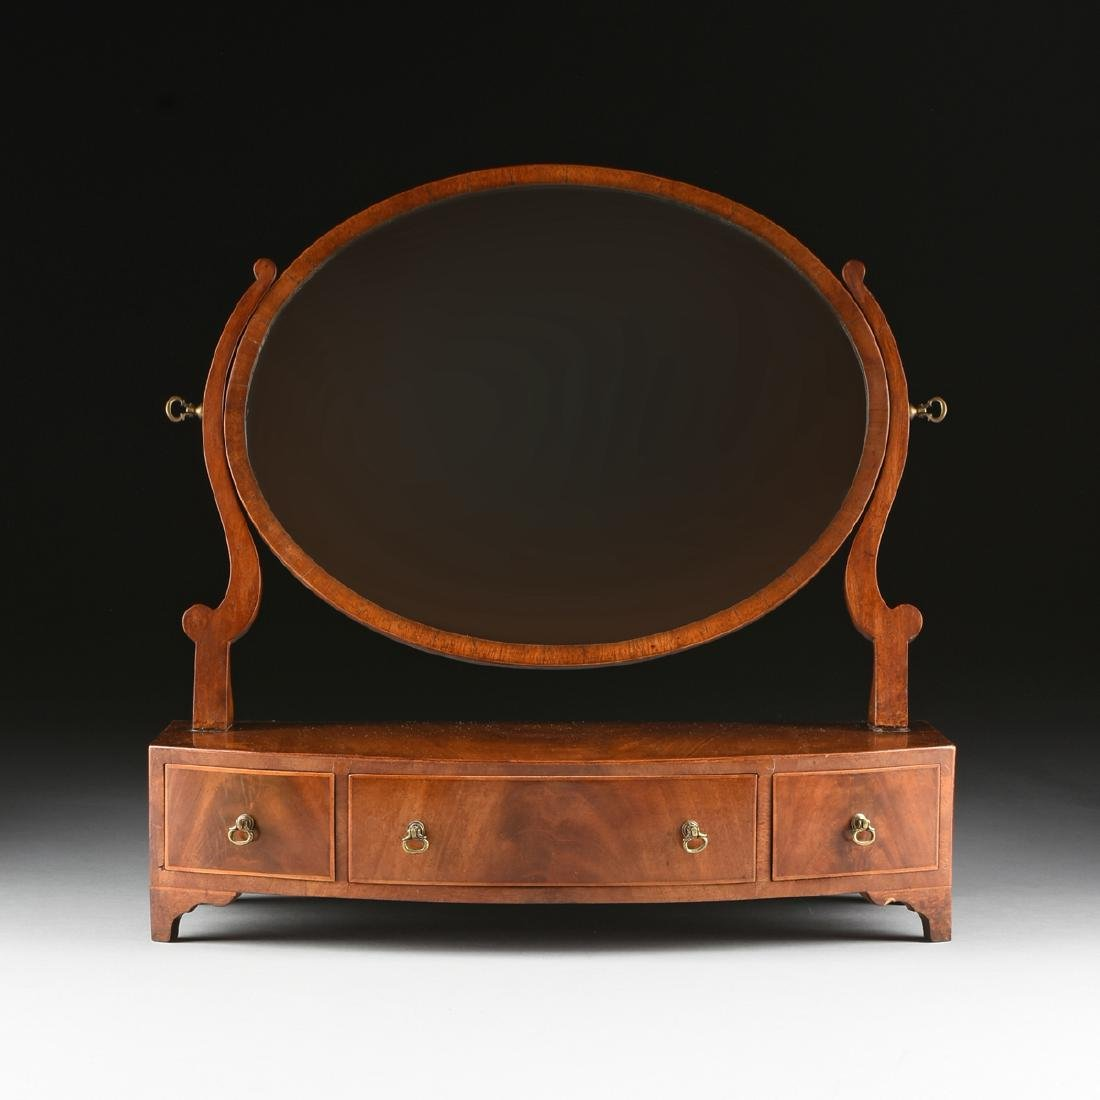 A LATE VICTORIAN/EDWARDIAN GENTLEMAN'S FLAME MAHOGANY